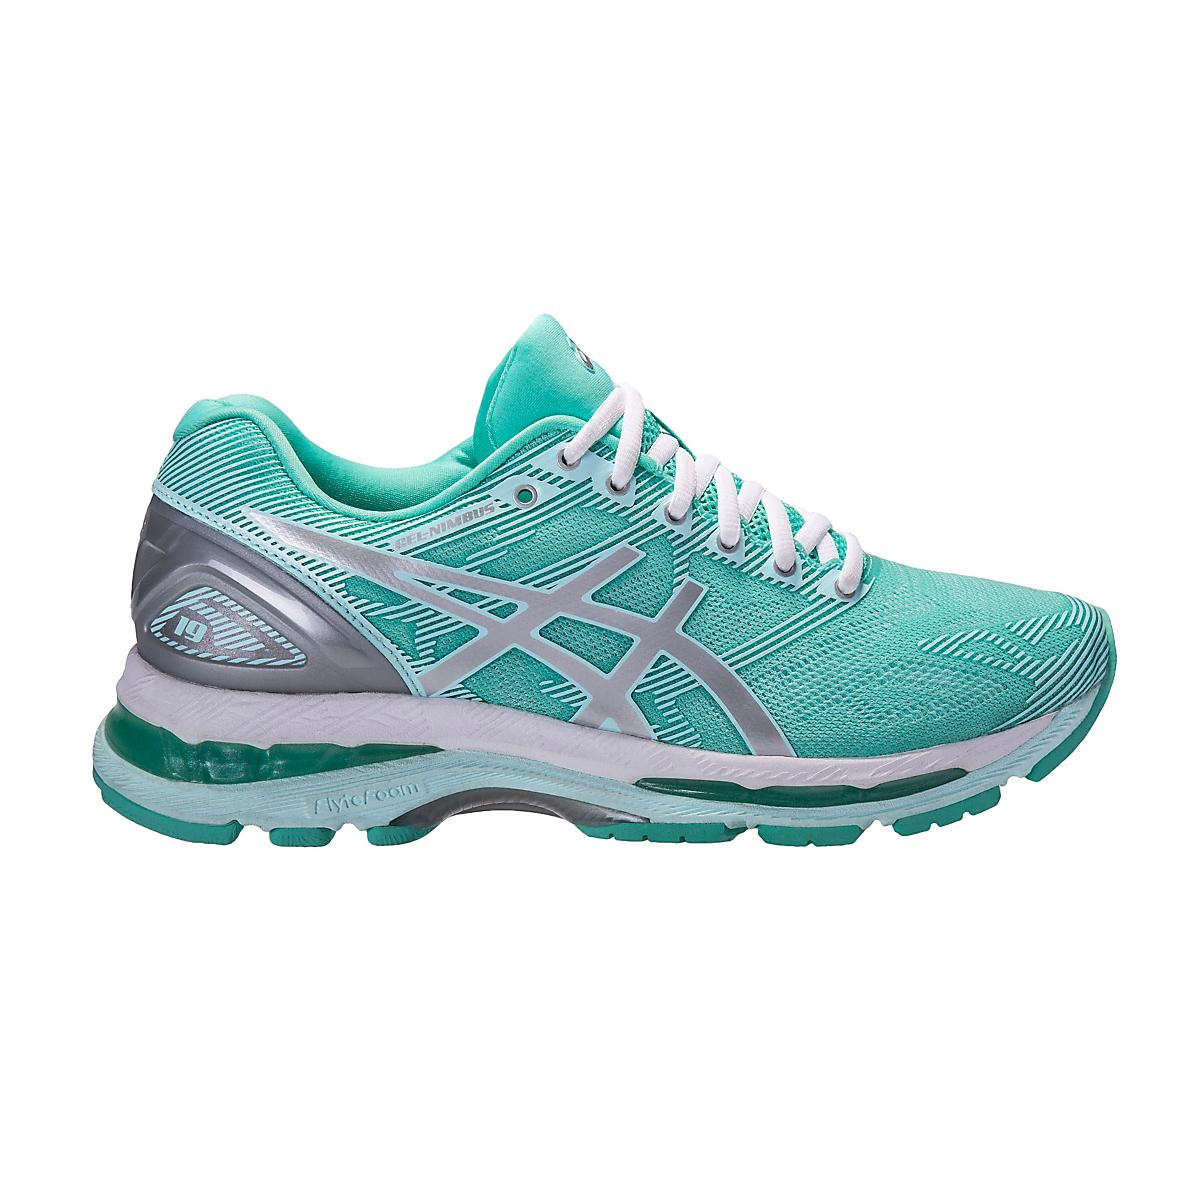 472486f9370bf Womens ASICS GEL-Nimbus 19 Exclusive Running Shoe at Road Runner Sports